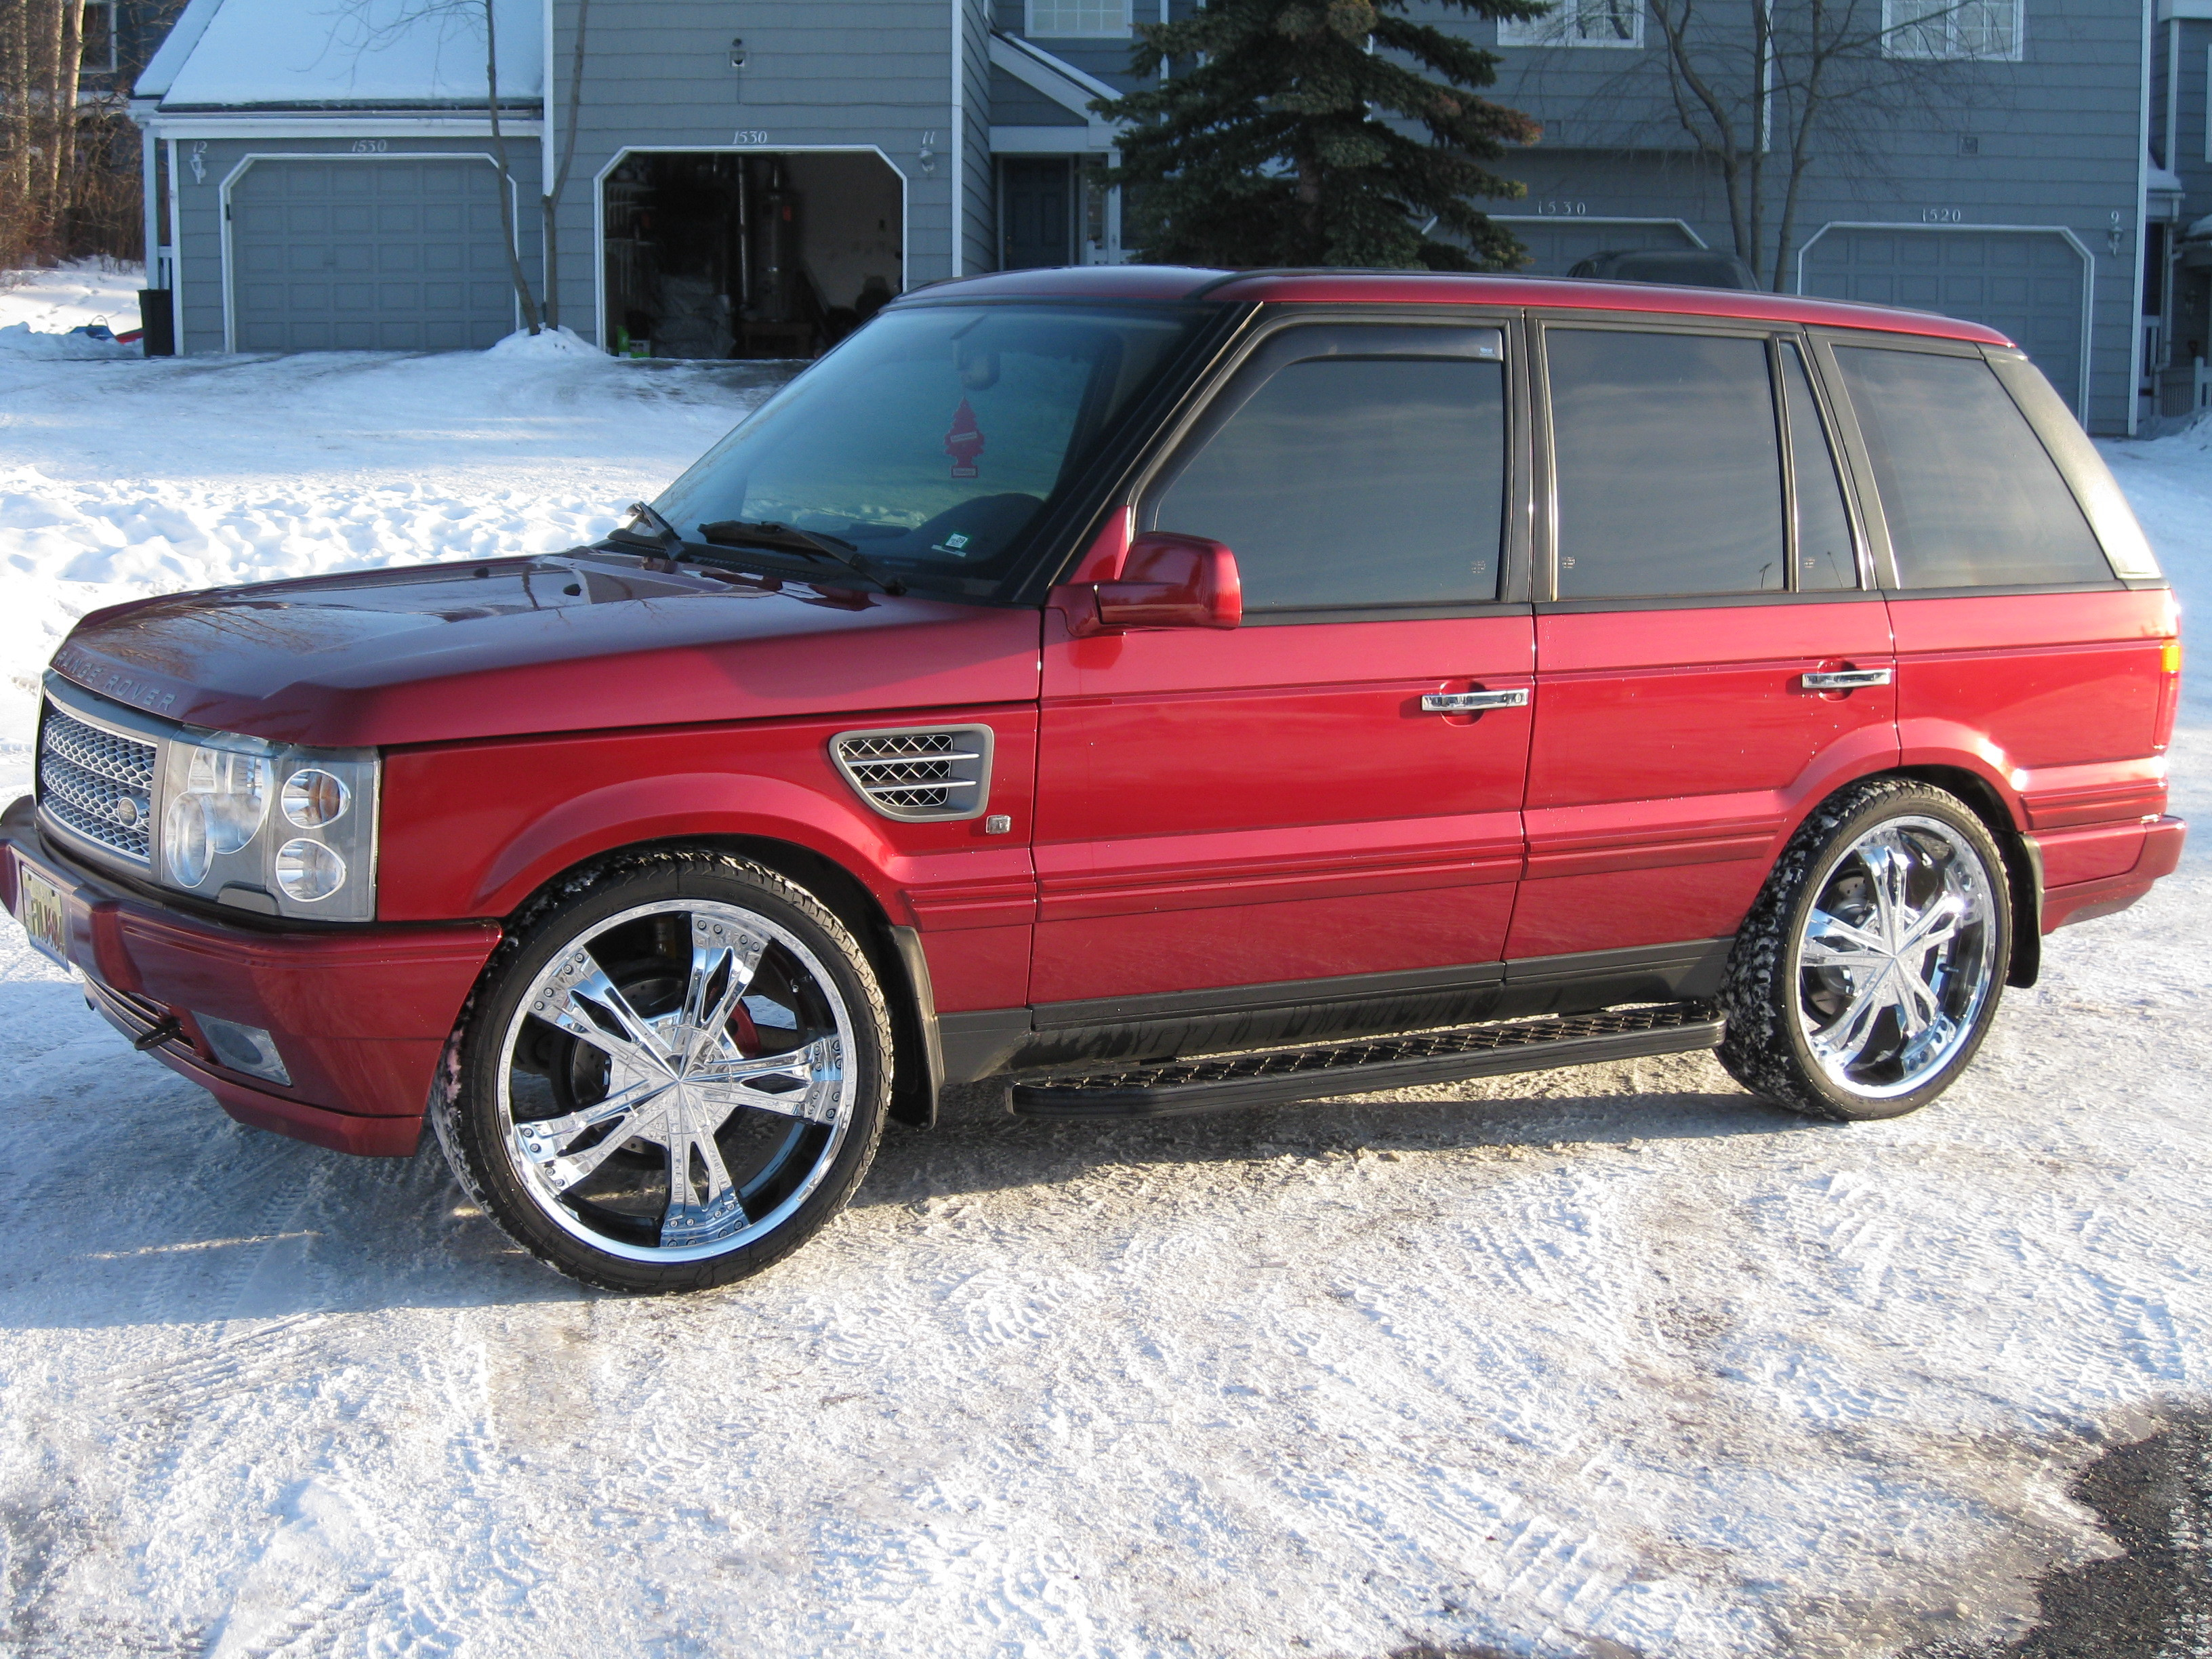 1997 Land Rover Range Rover 4 6 HSE Sport Utility 4D View all